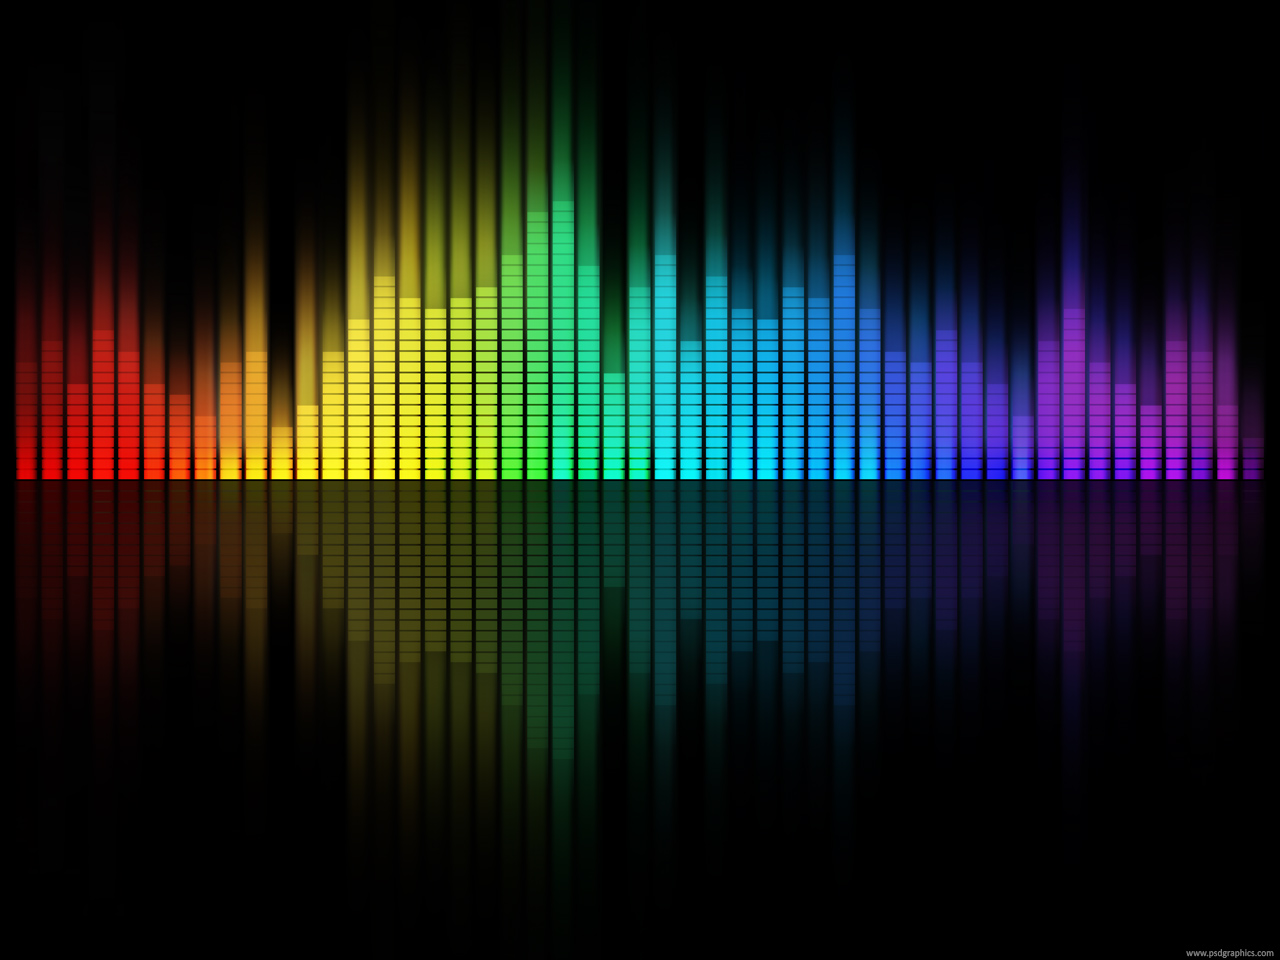 Background image music - Medium Size Preview 1280x960px Music Equalizer Background